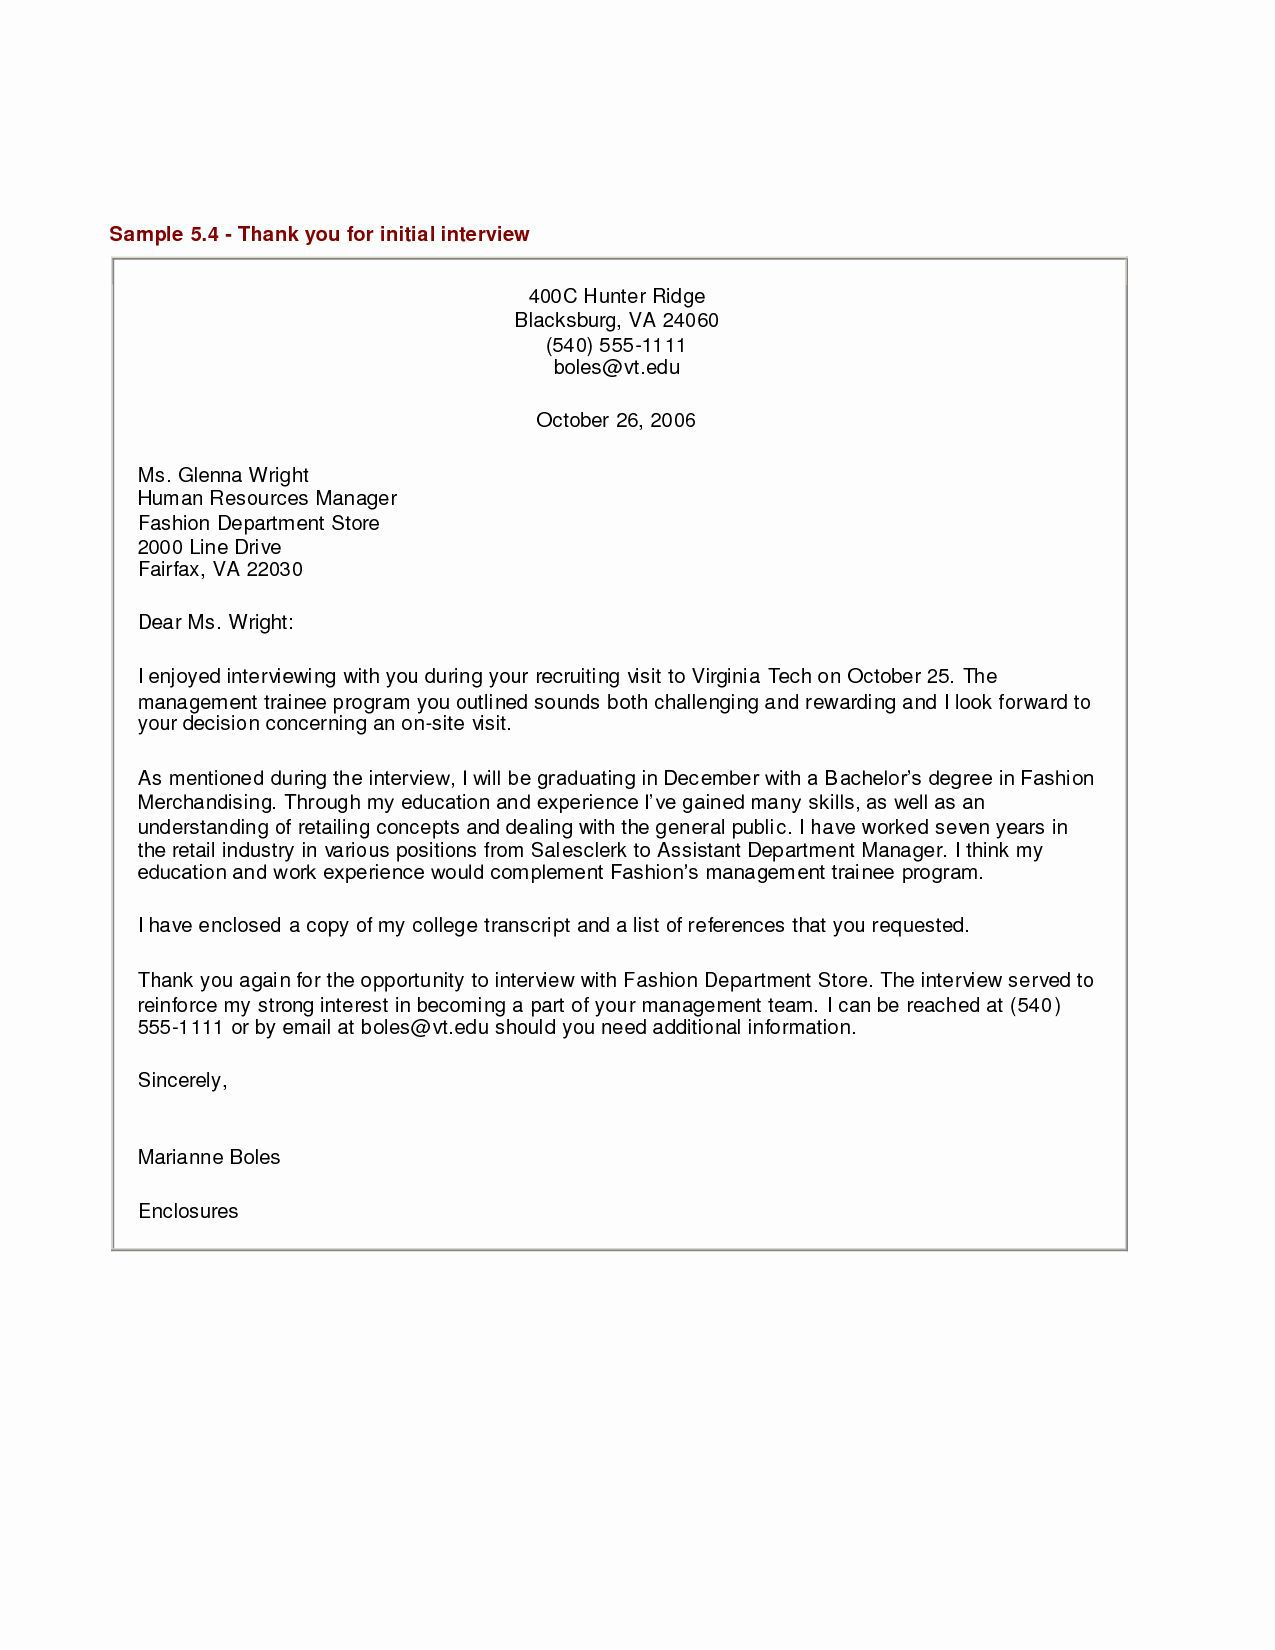 000 Marvelou Thank You Note Template Medical School Interview Inspiration  Letter SampleFull